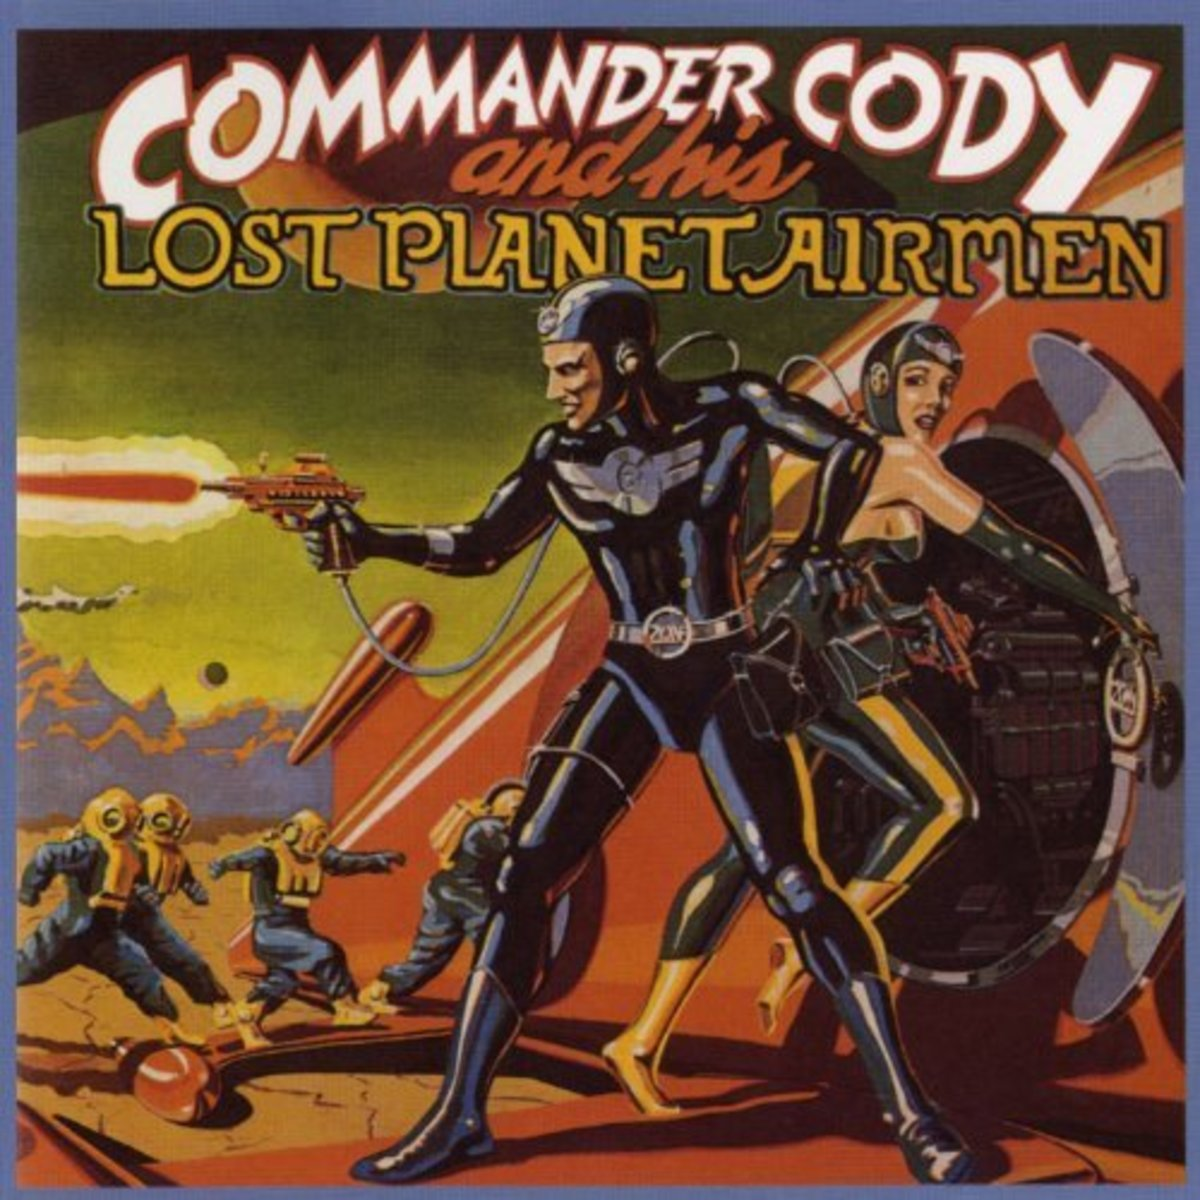 The idea for the Commander Cody band and their imaginative album covers came from a 1950s sci-fi serial.